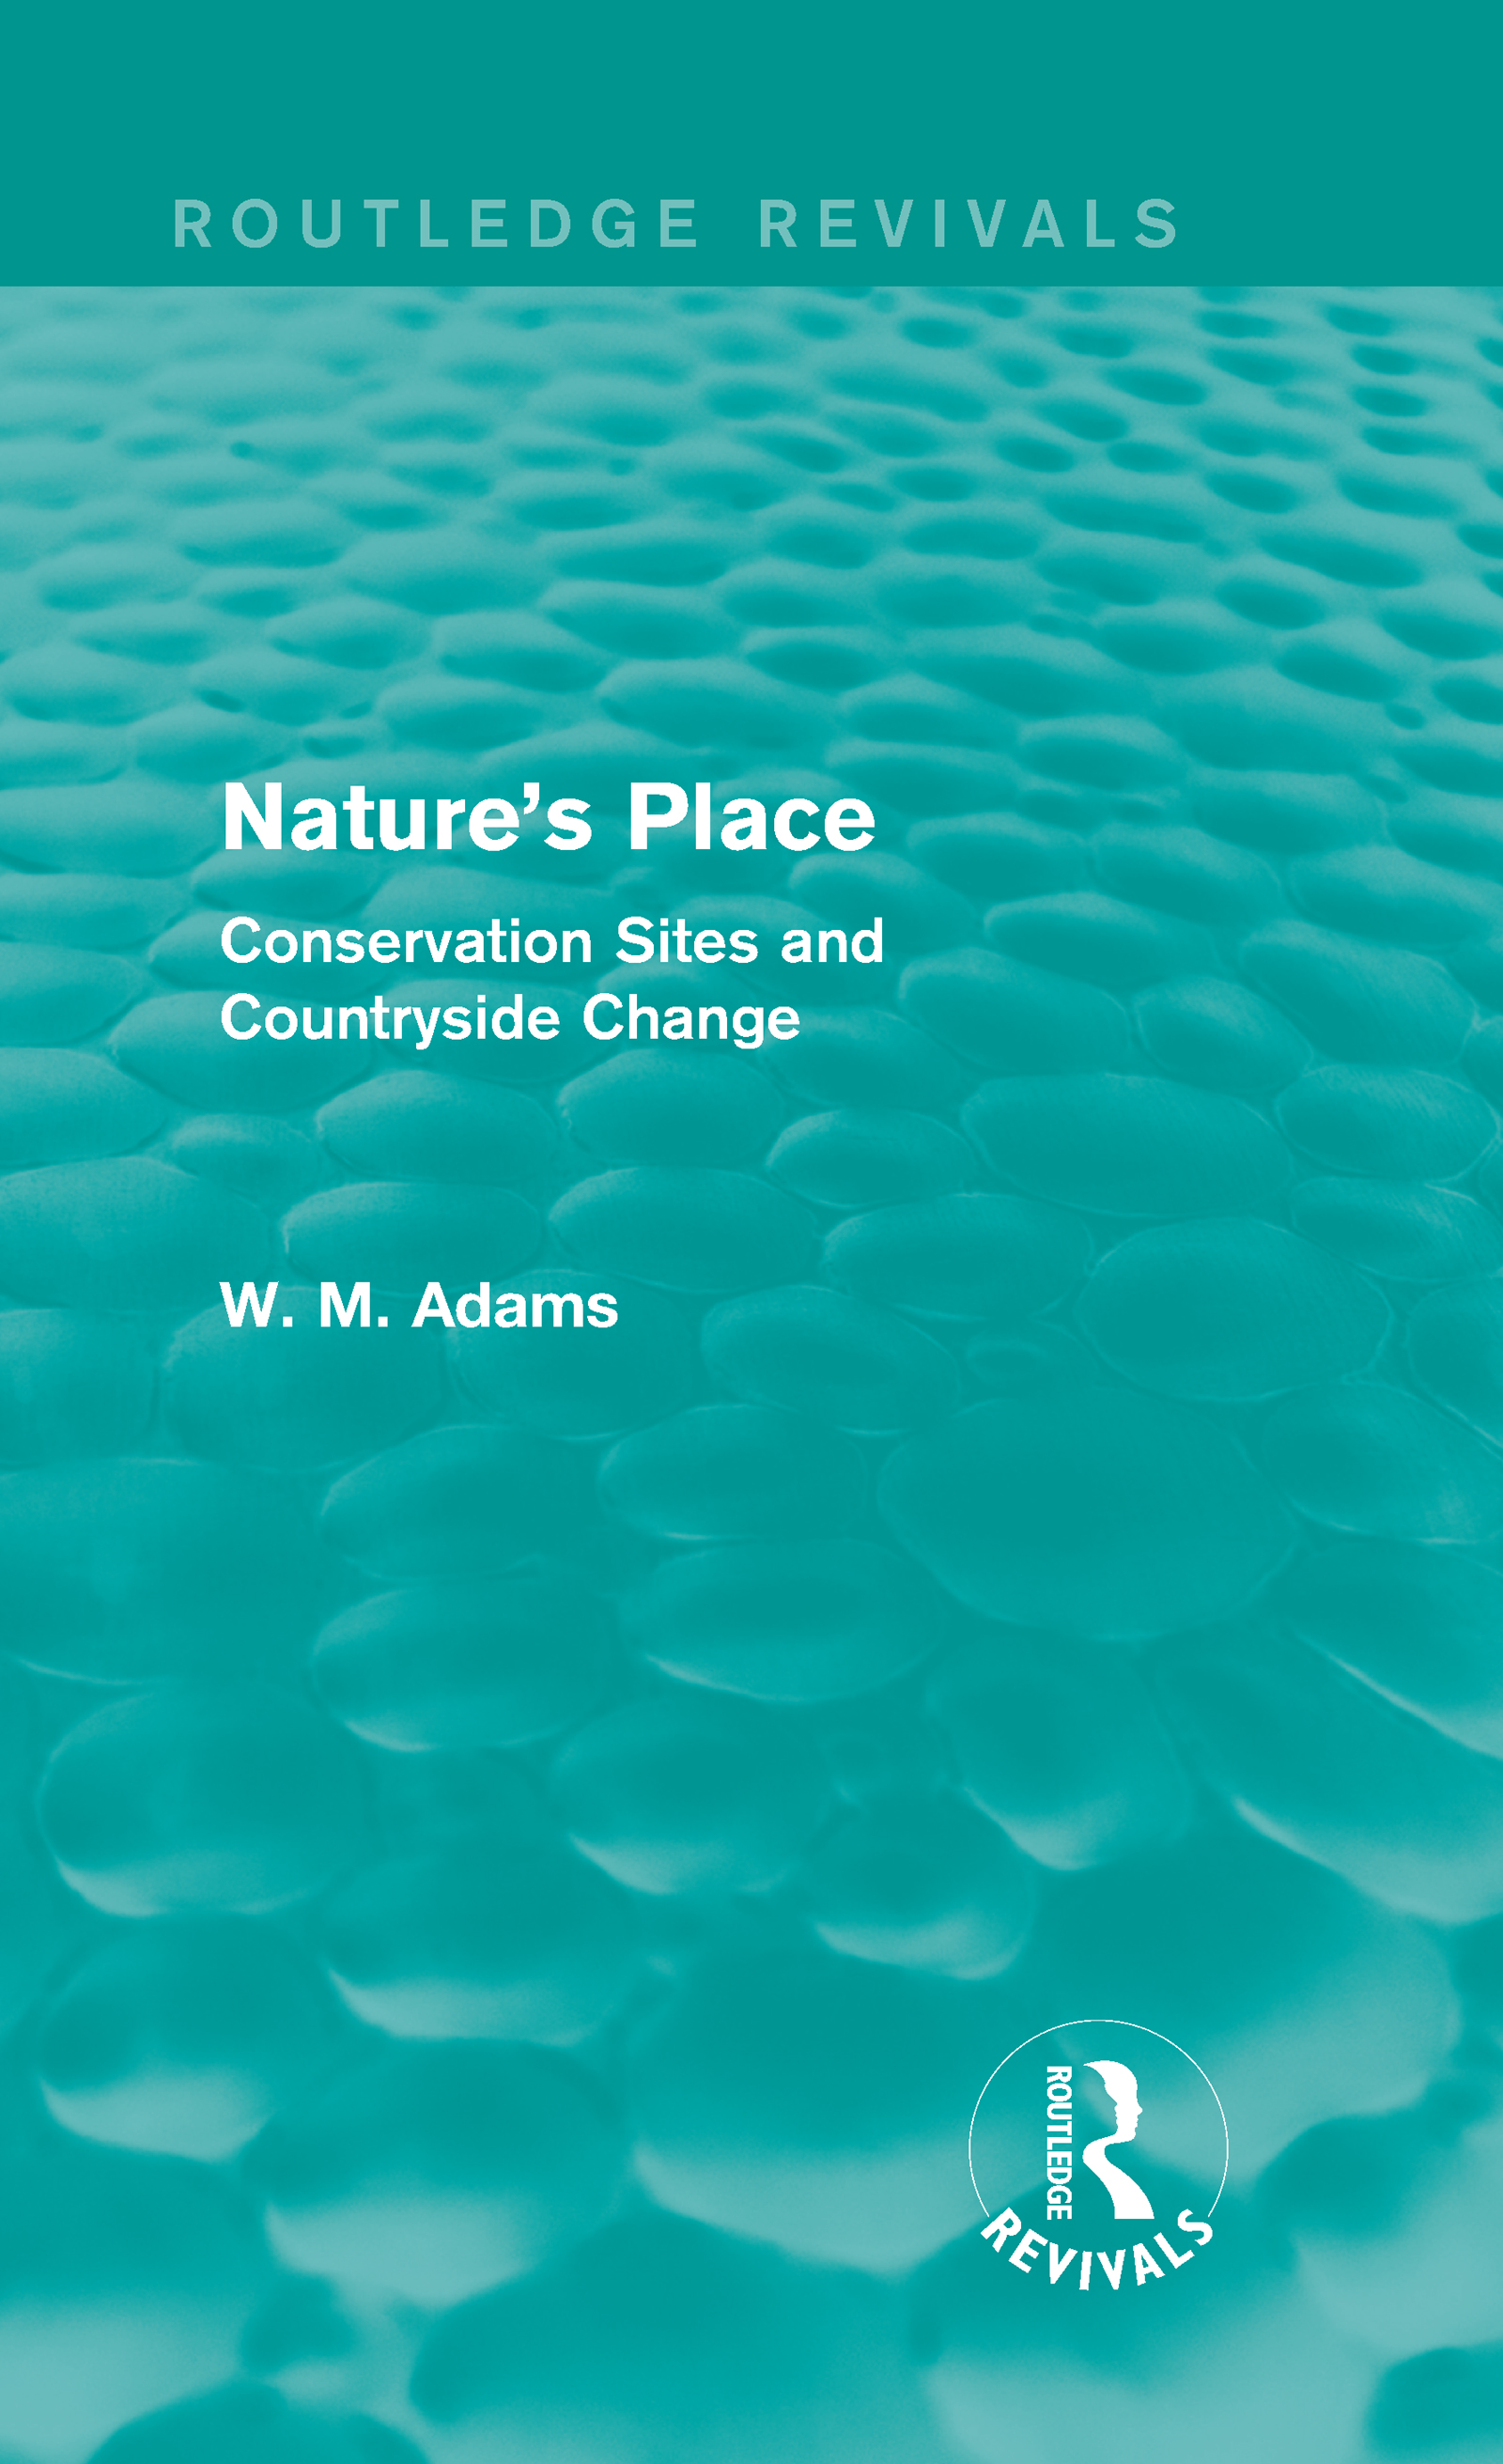 Nature's Place (Routledge Revivals): Conservation Sites and Countryside Change (Hardback) book cover